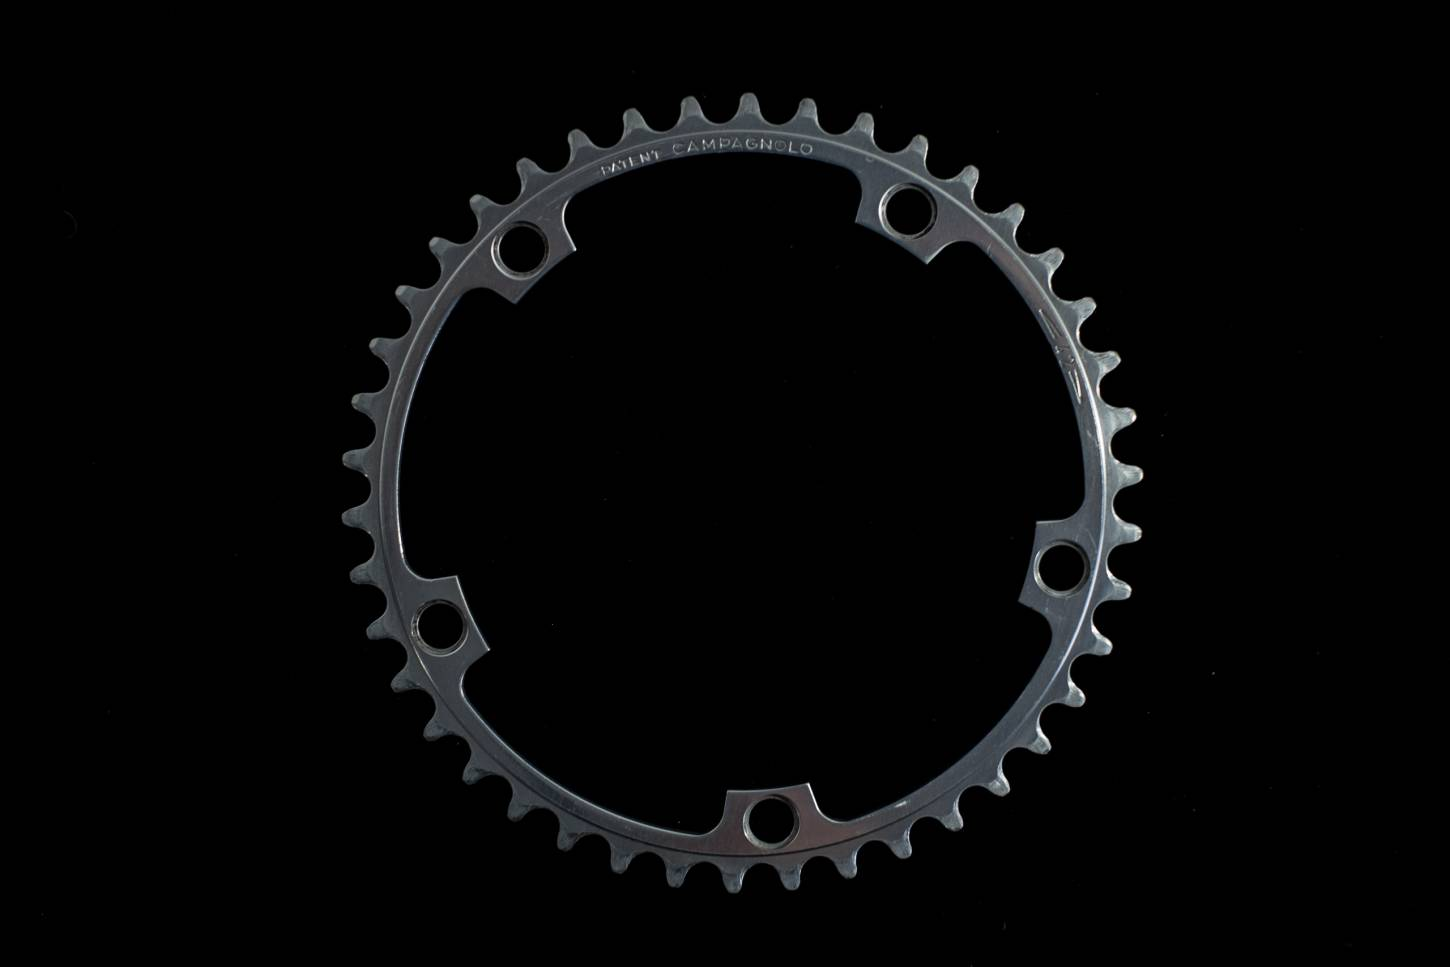 Campagnolo patent chainring / chainring 144 LK 42 teeth